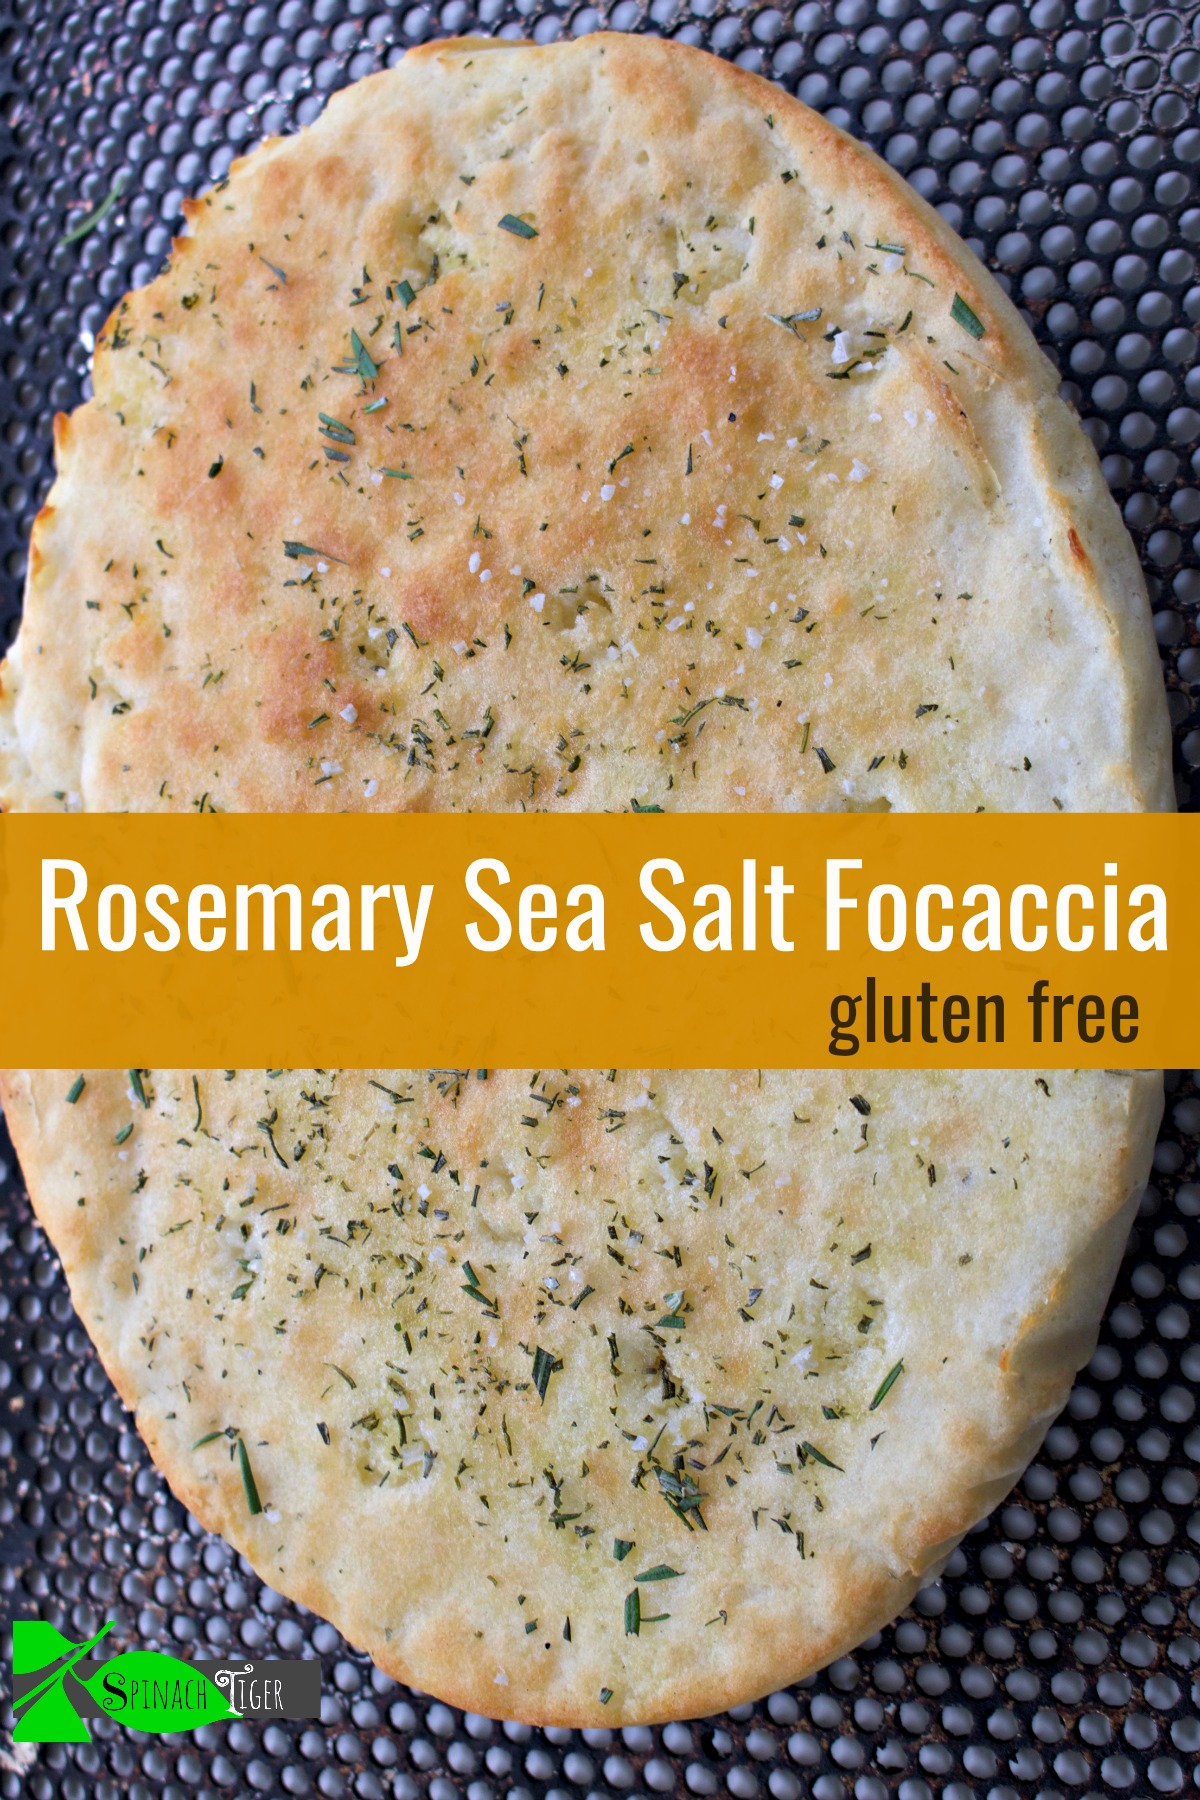 Gluten Free Focaccia with Rosemary from Spinach Tiger